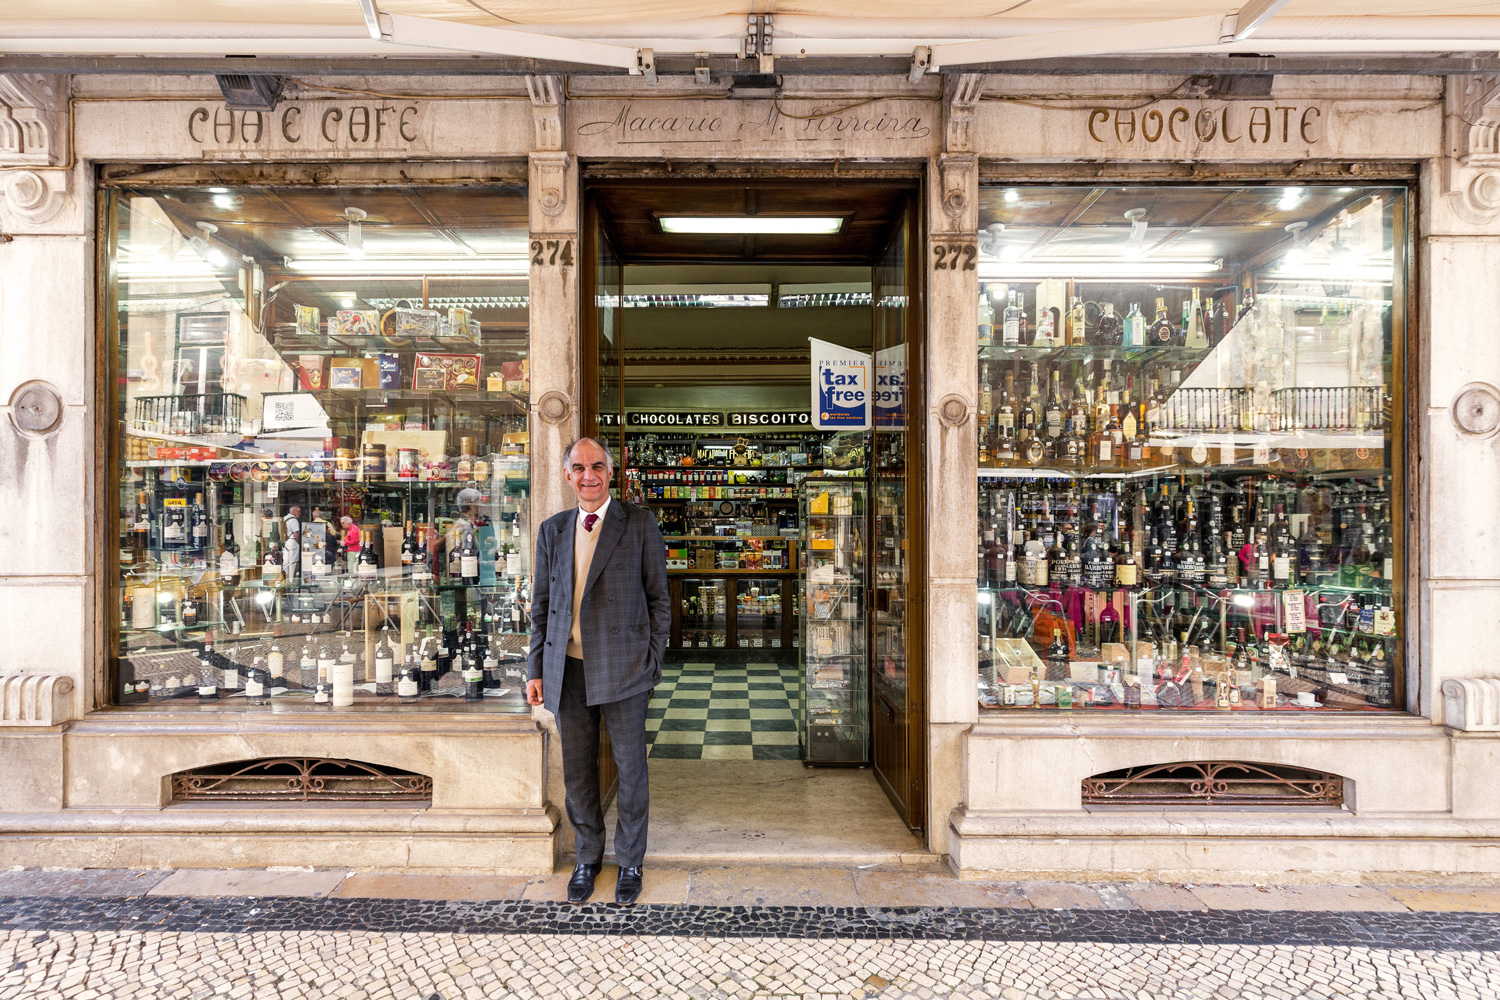 Luis Torres receives clients at the entrance of his delicatessen